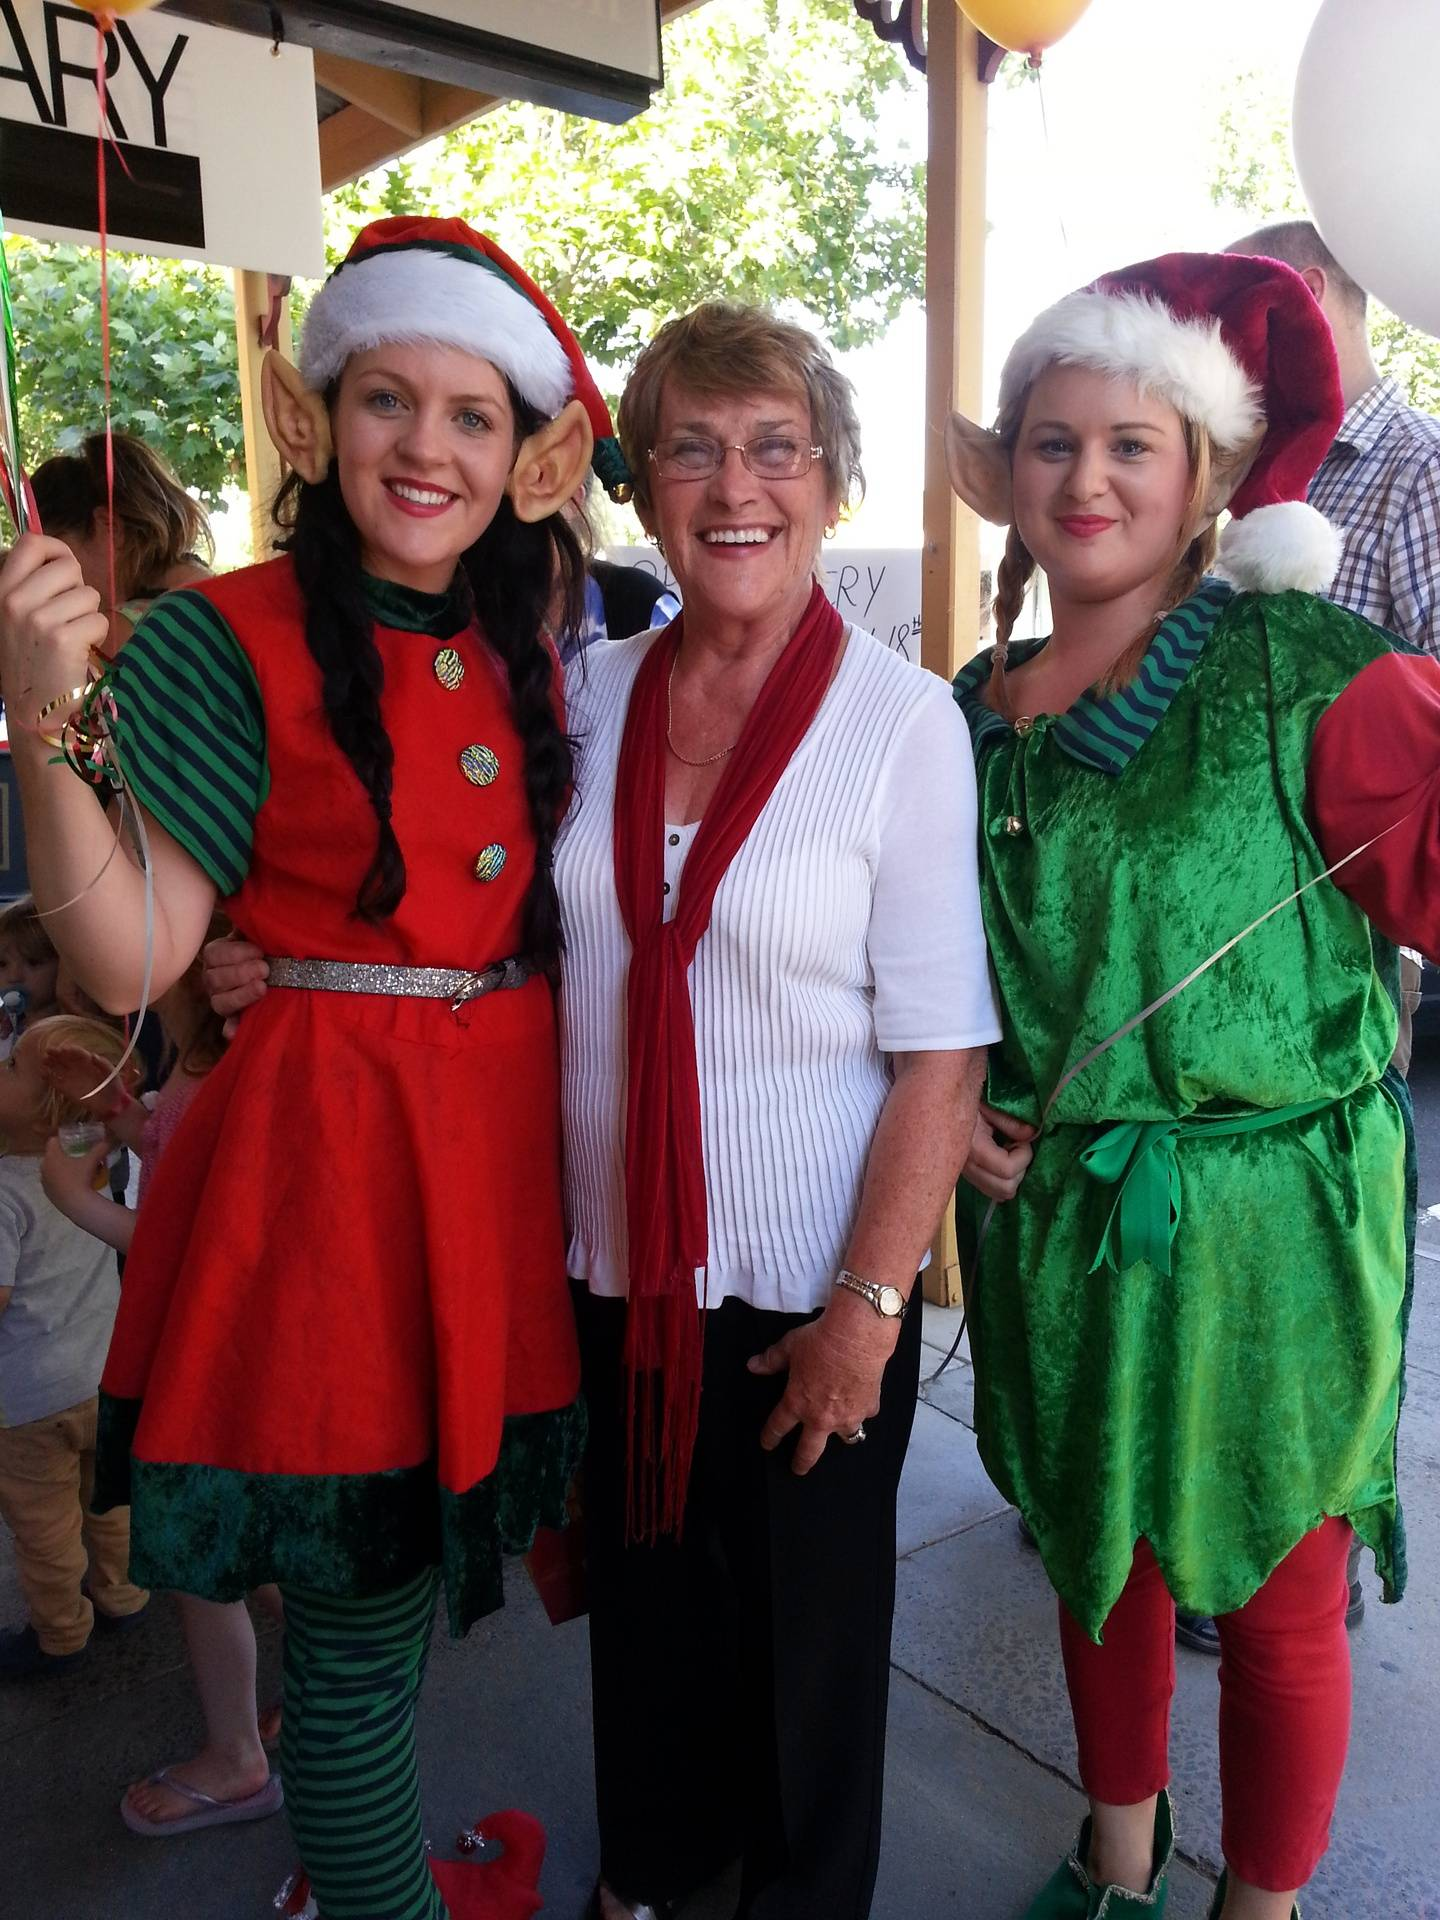 Pat and the cheeky elves